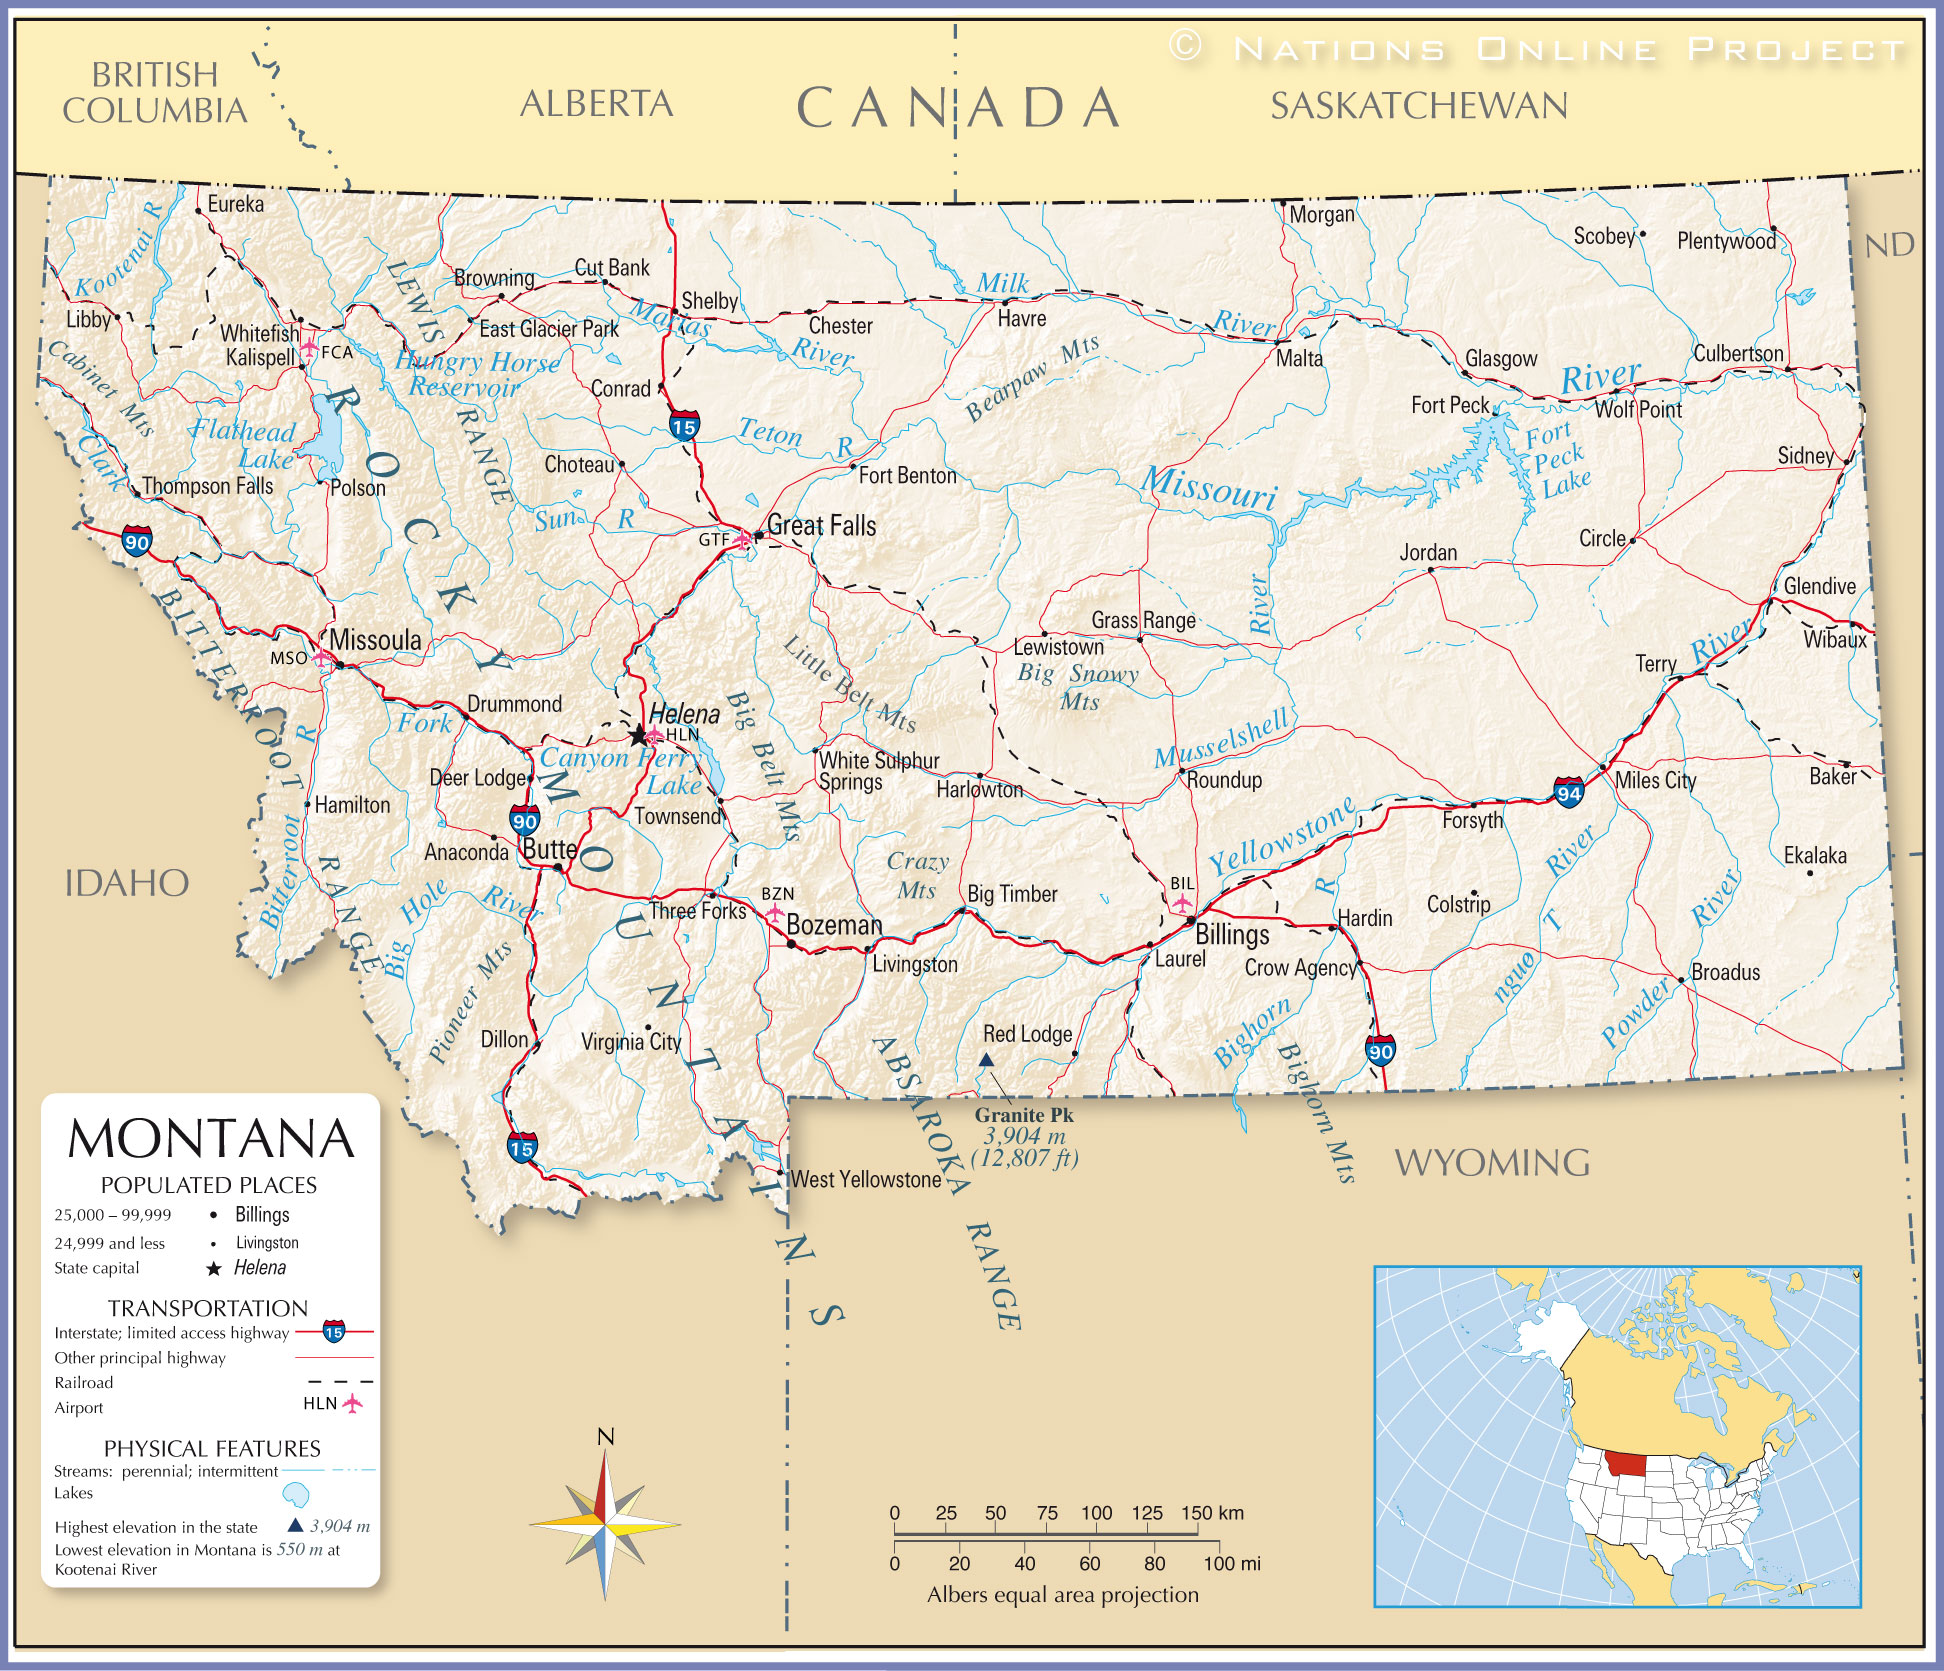 Maps Of Montana Reference Maps of Montana, USA   Nations Online Project